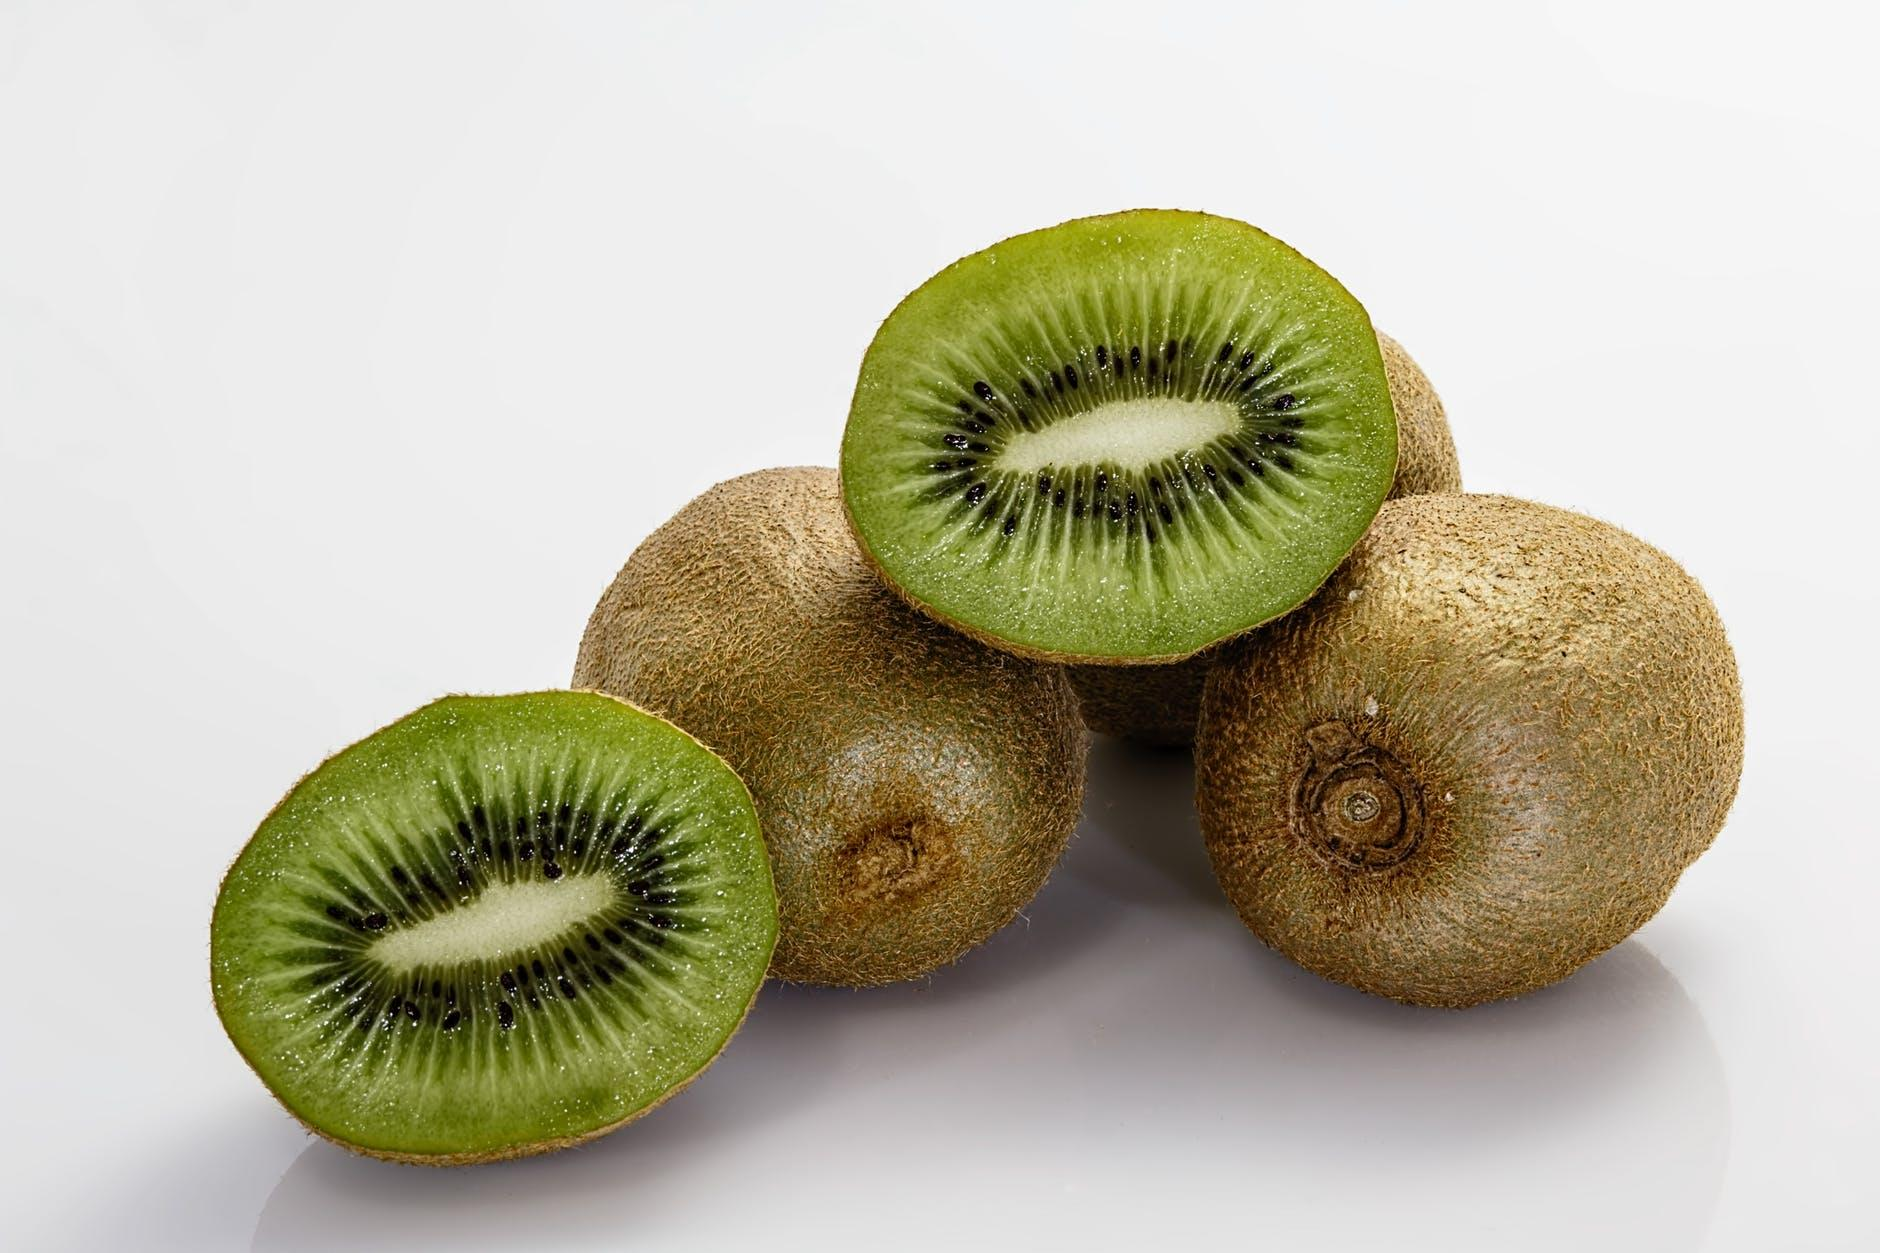 The fruit that can help give you a good night's sleep